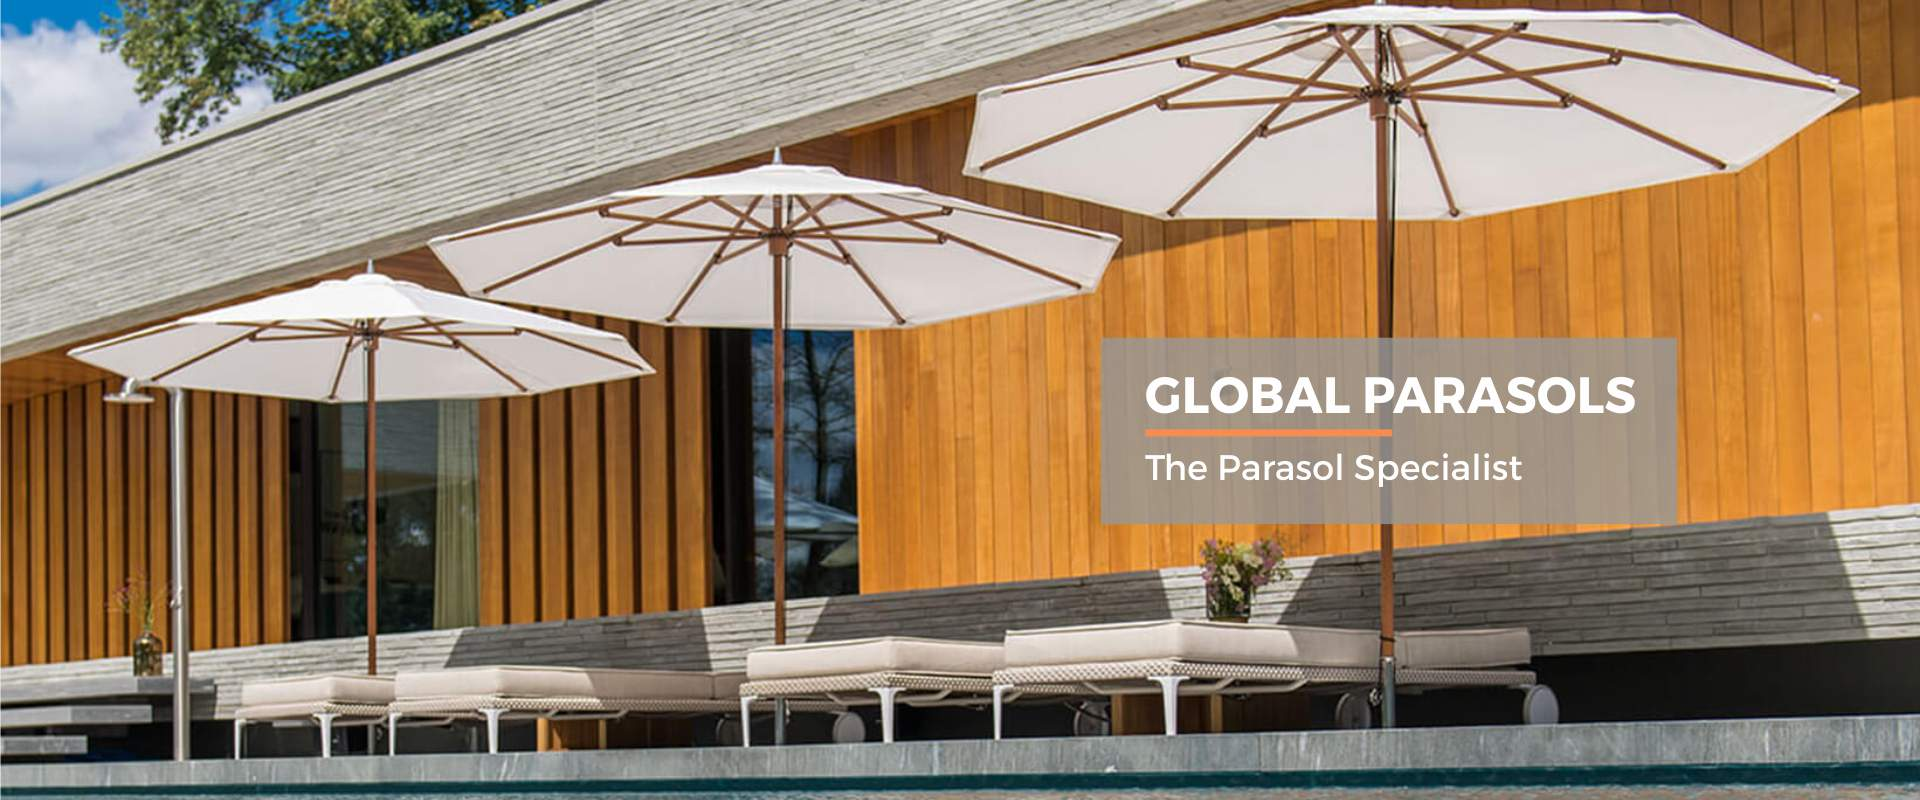 Global Parasols - your leading parasol specialist